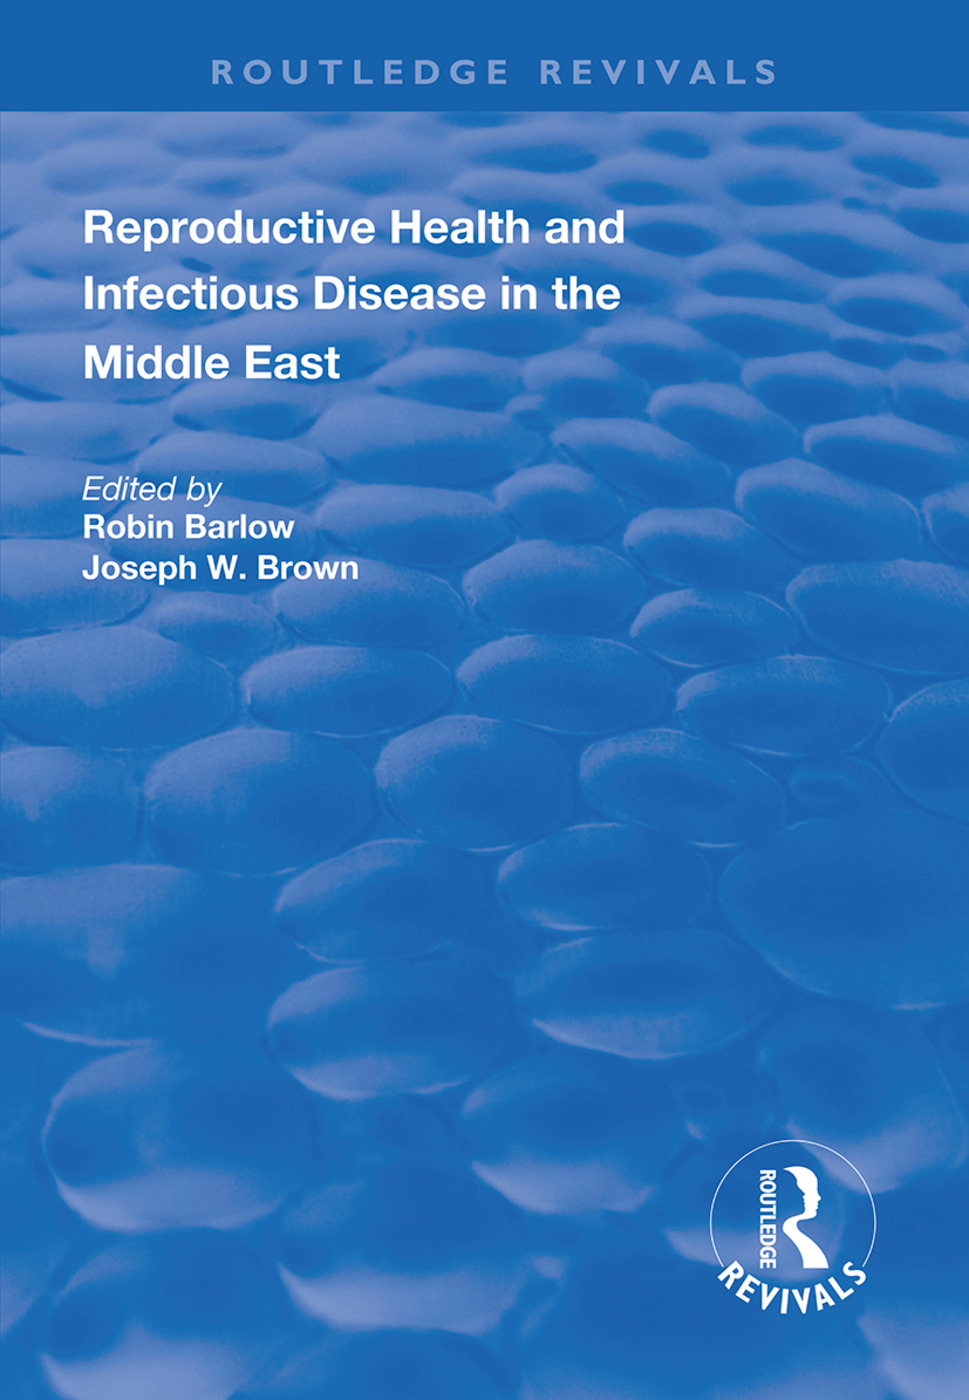 Reproductive Health and Infectious Disease in the Middle East